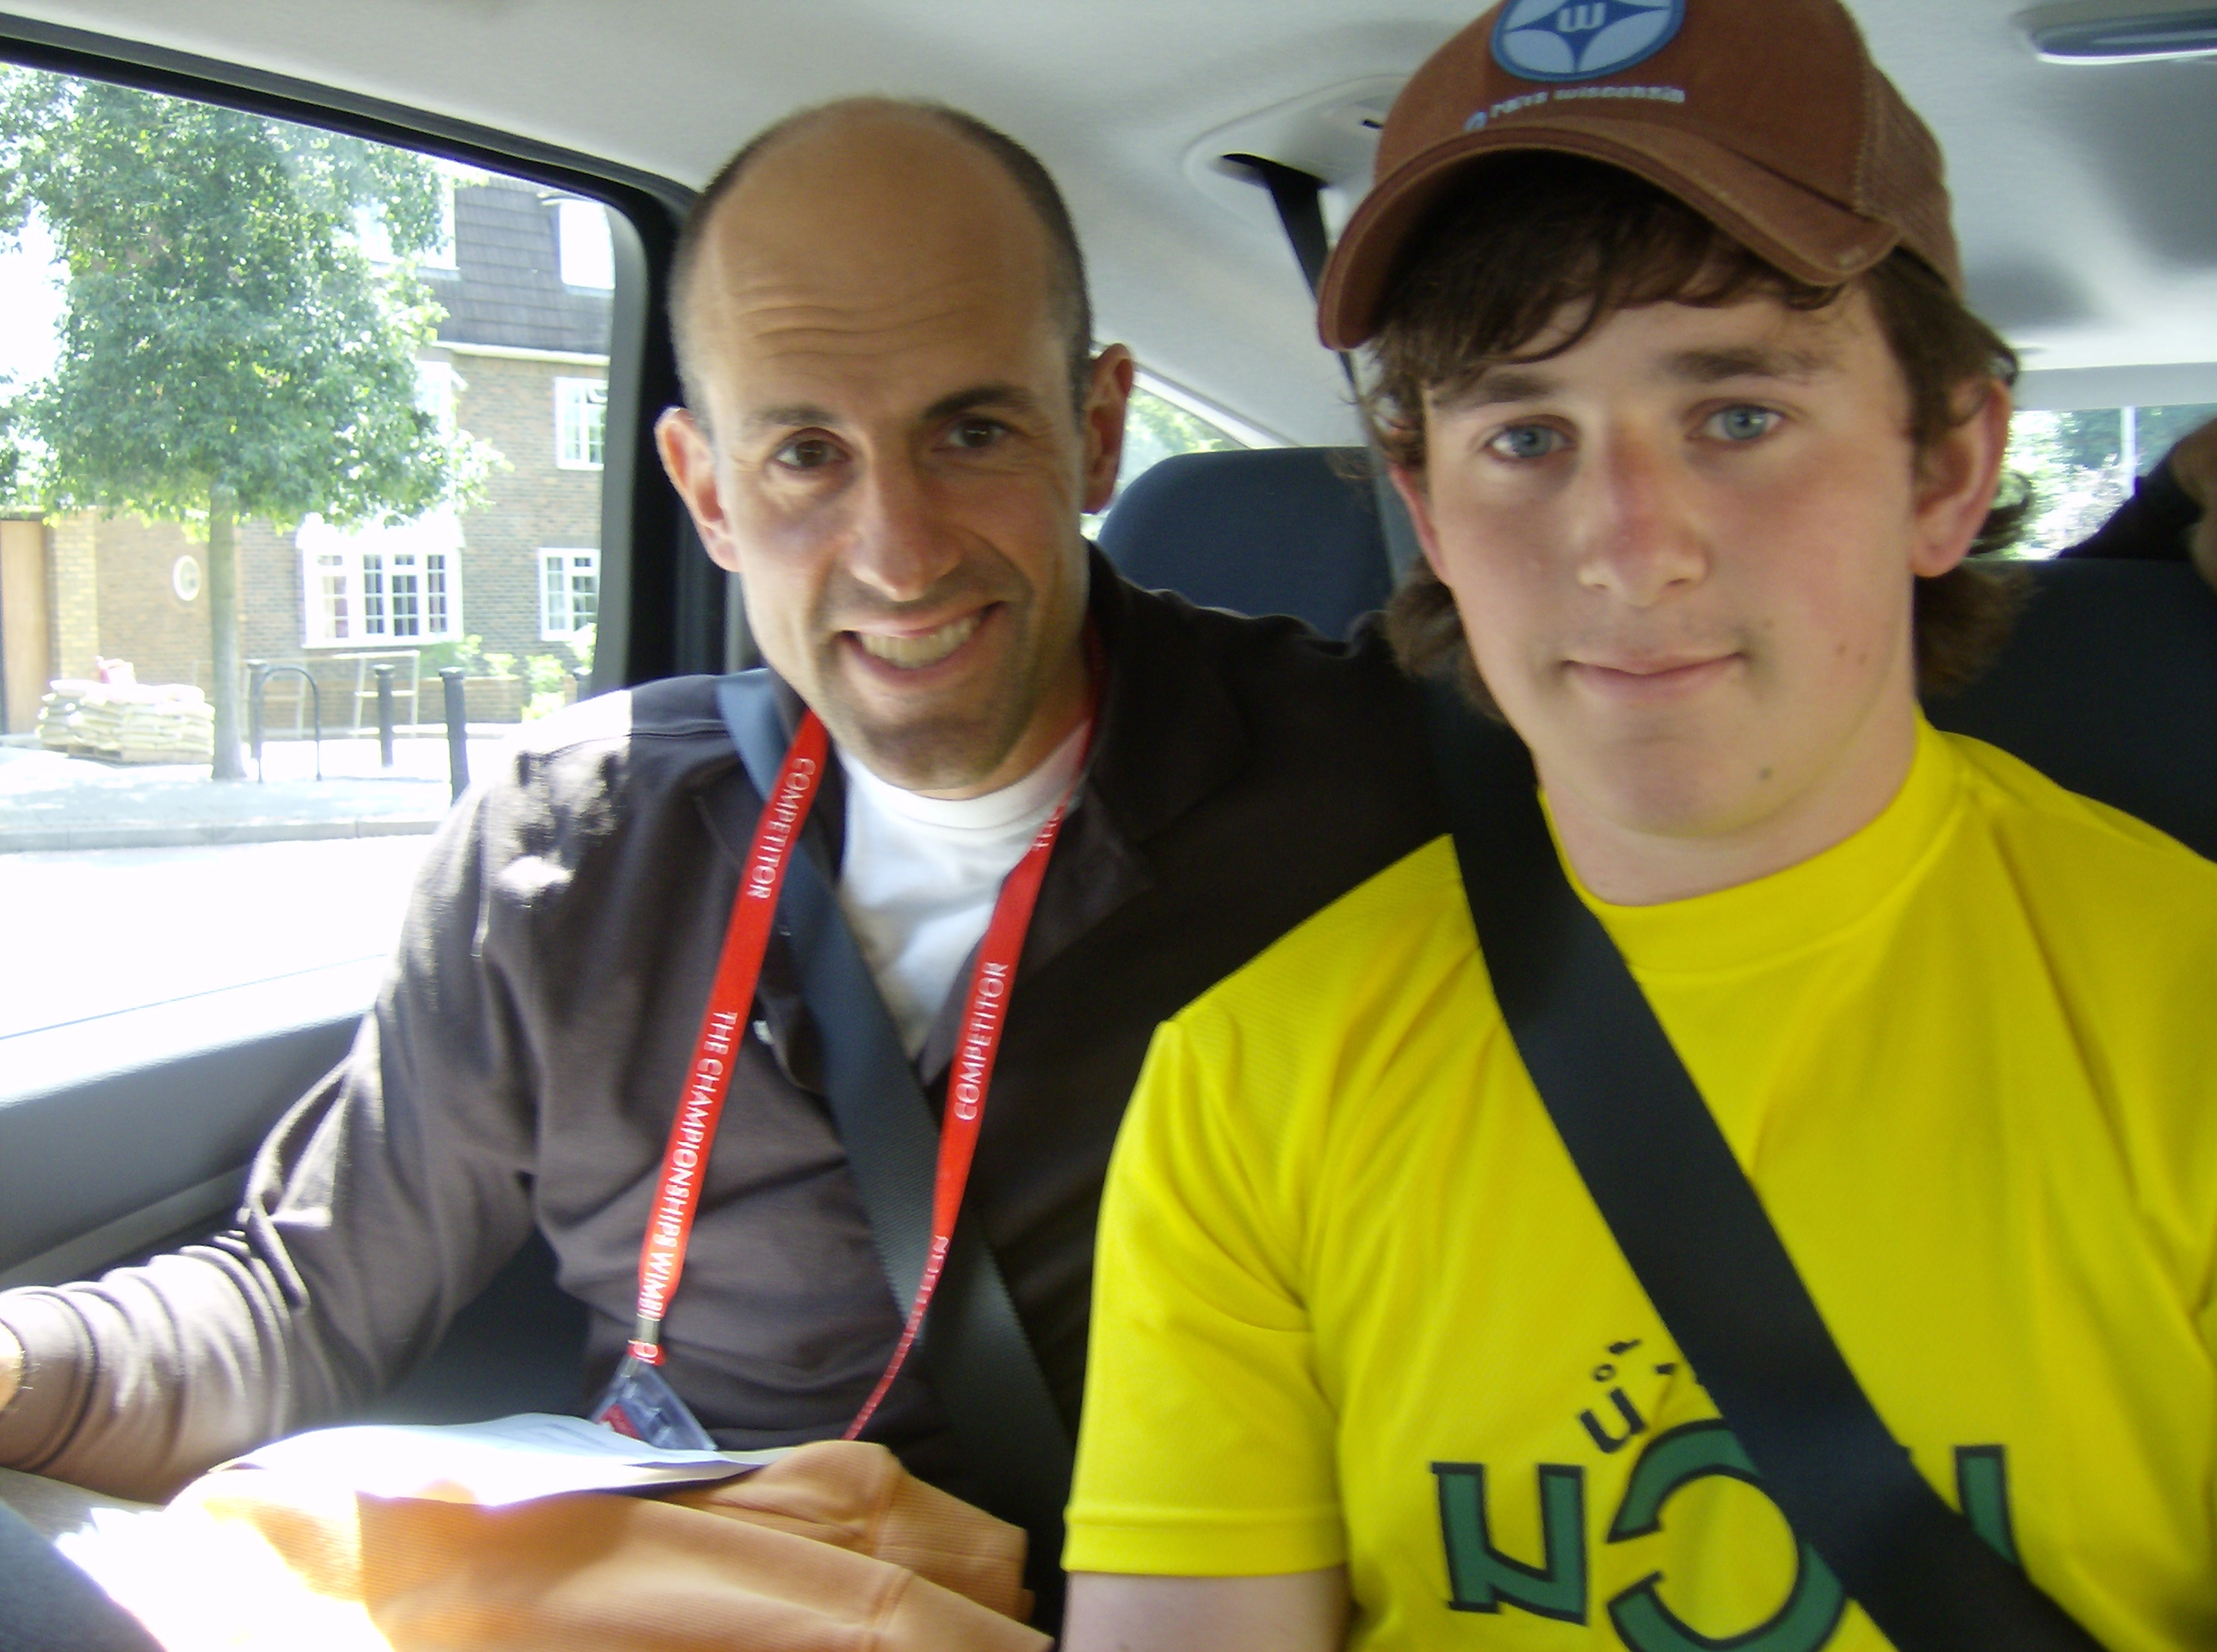 Jim and I on the way to Wimbledon in 2008 (28/6).